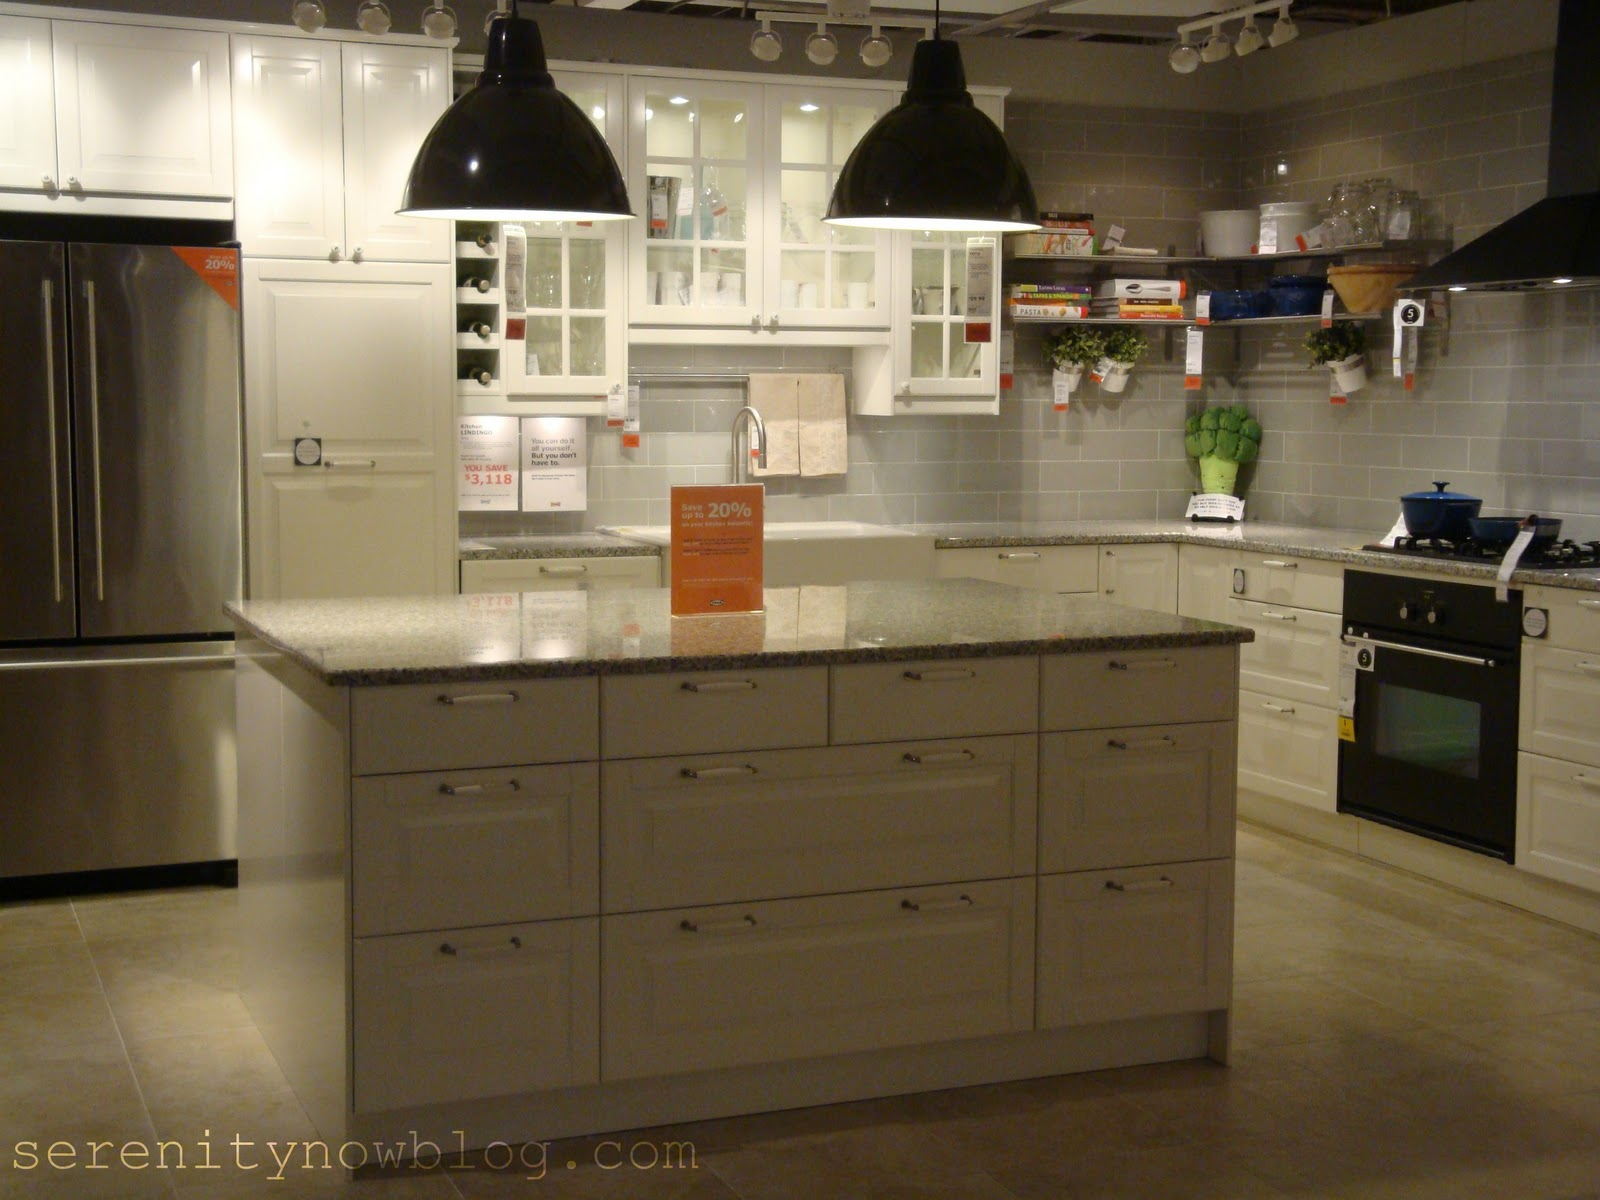 1000+ Images About Ikea Kitchens On Pinterest